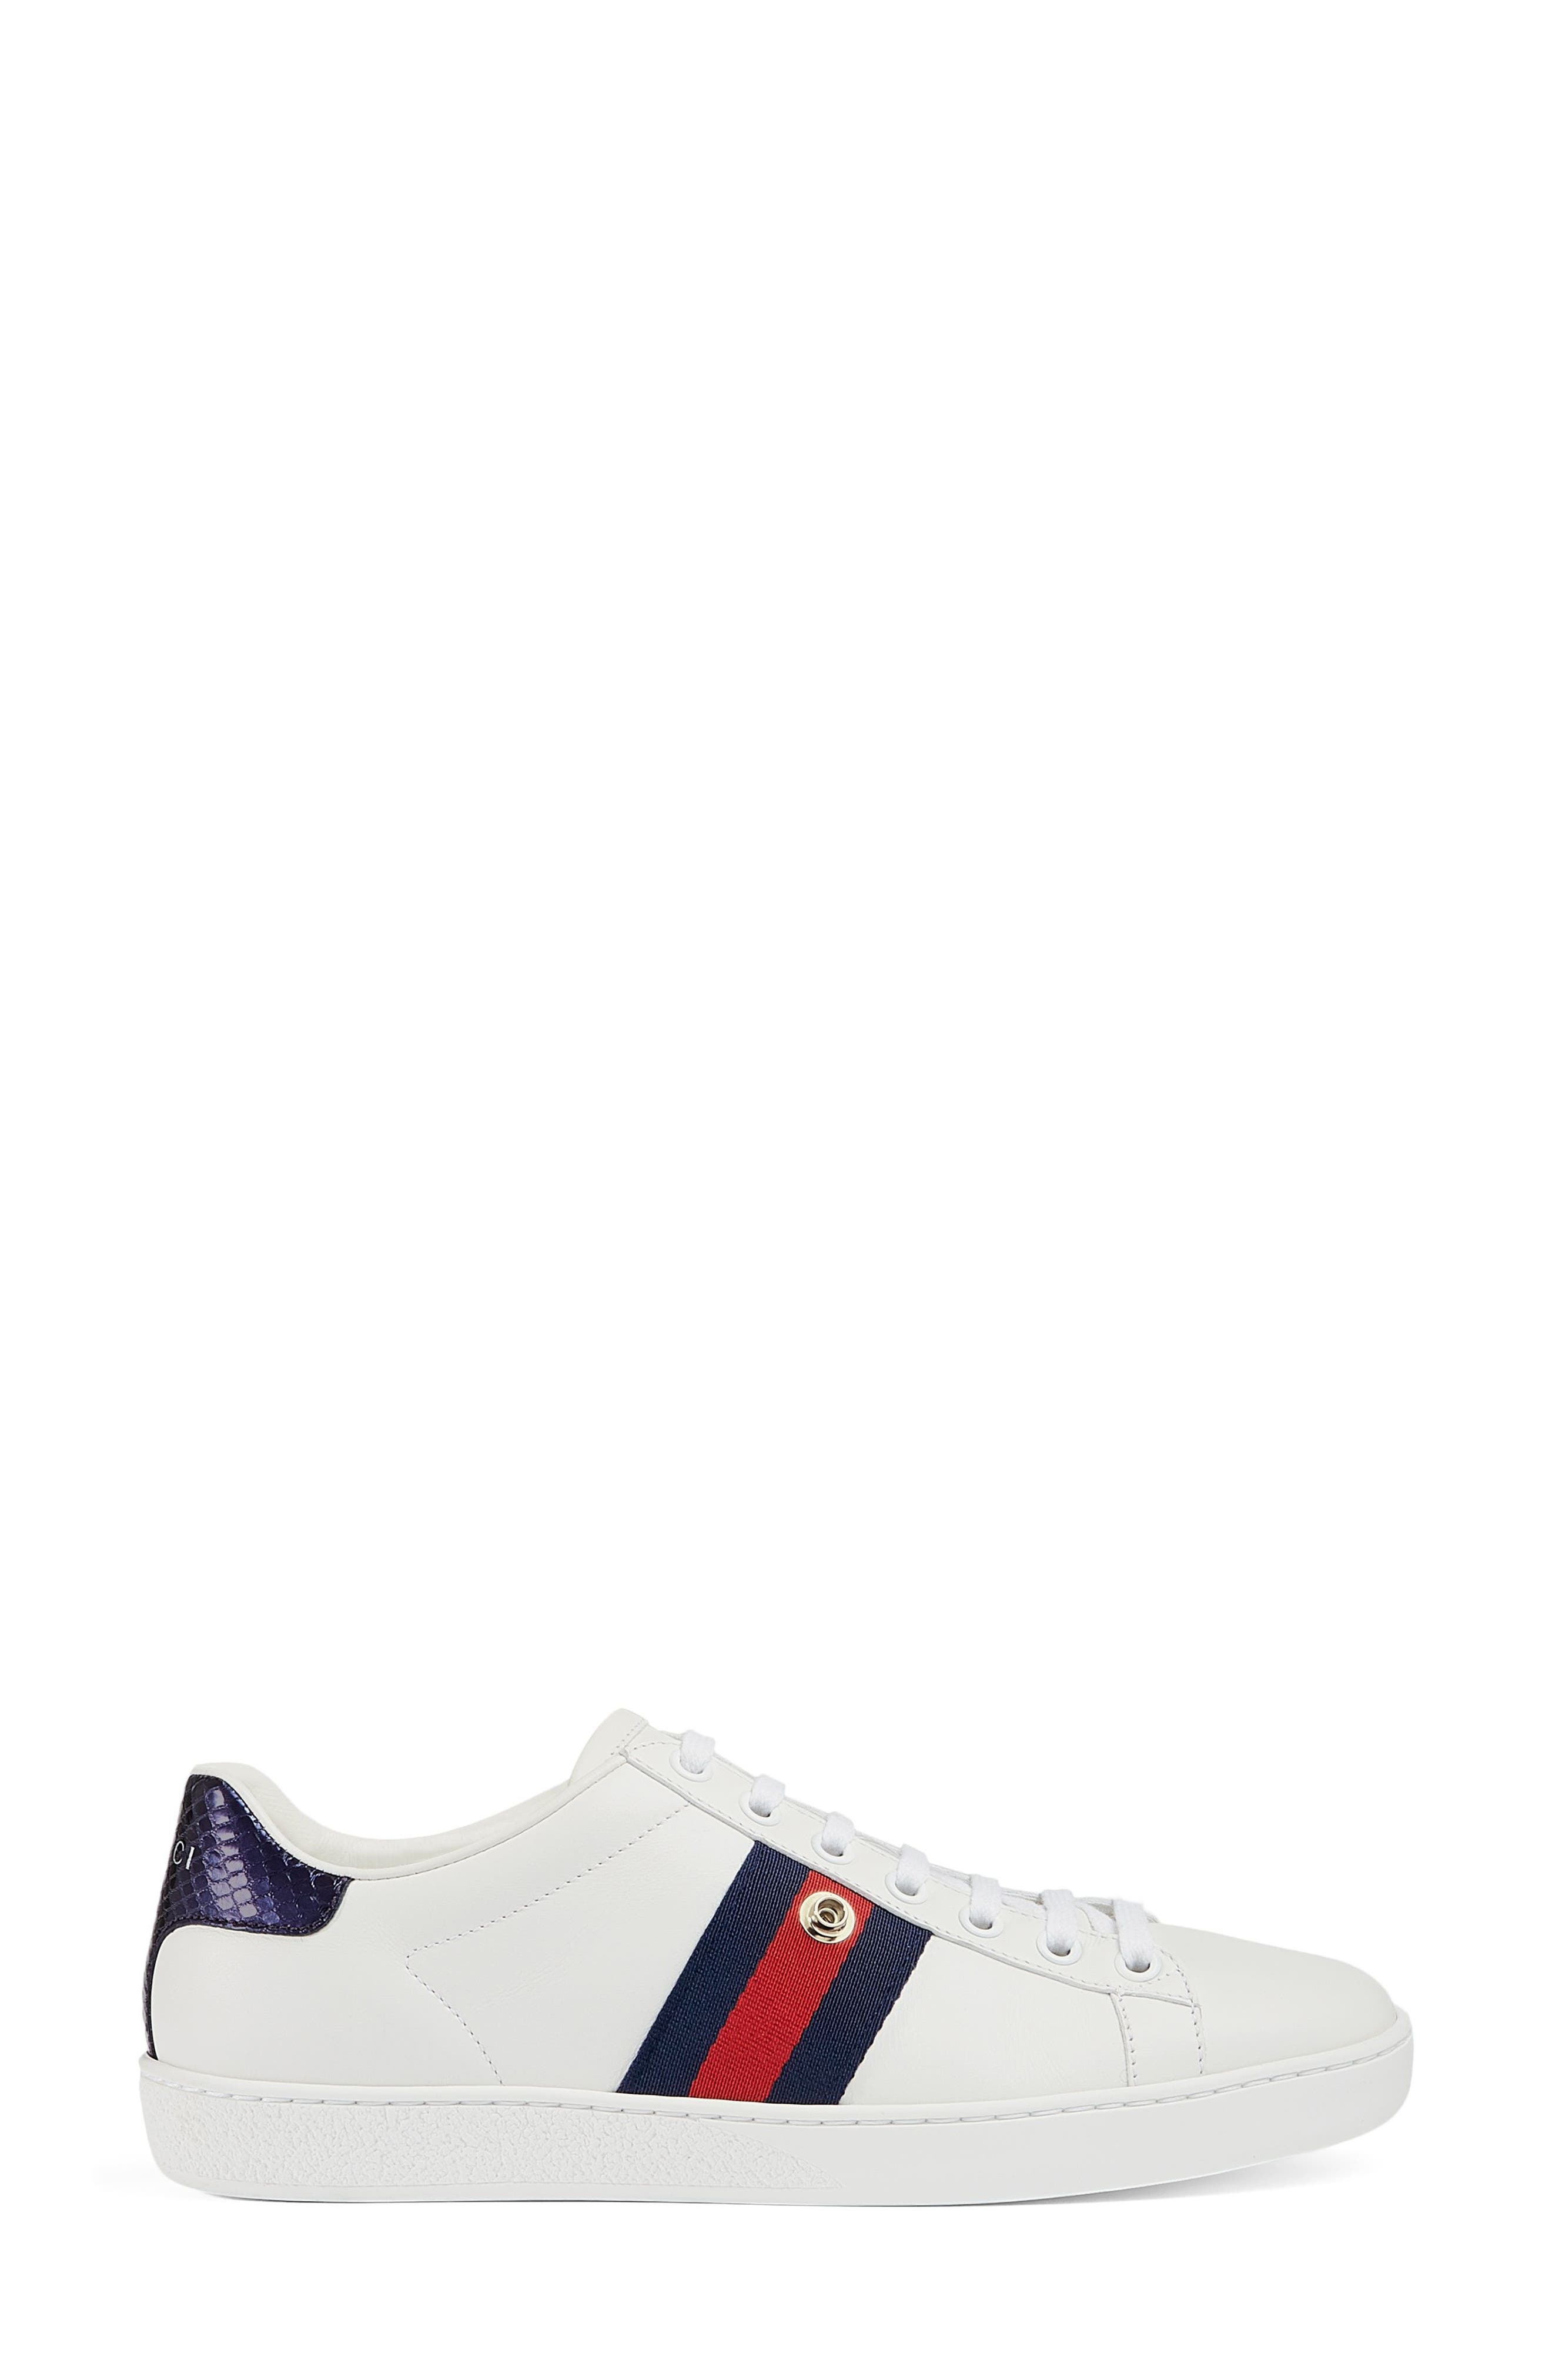 Gucci Women's New Ace Pineapple Embroidered Patch Low Top Sneaker Wyj61tADKm